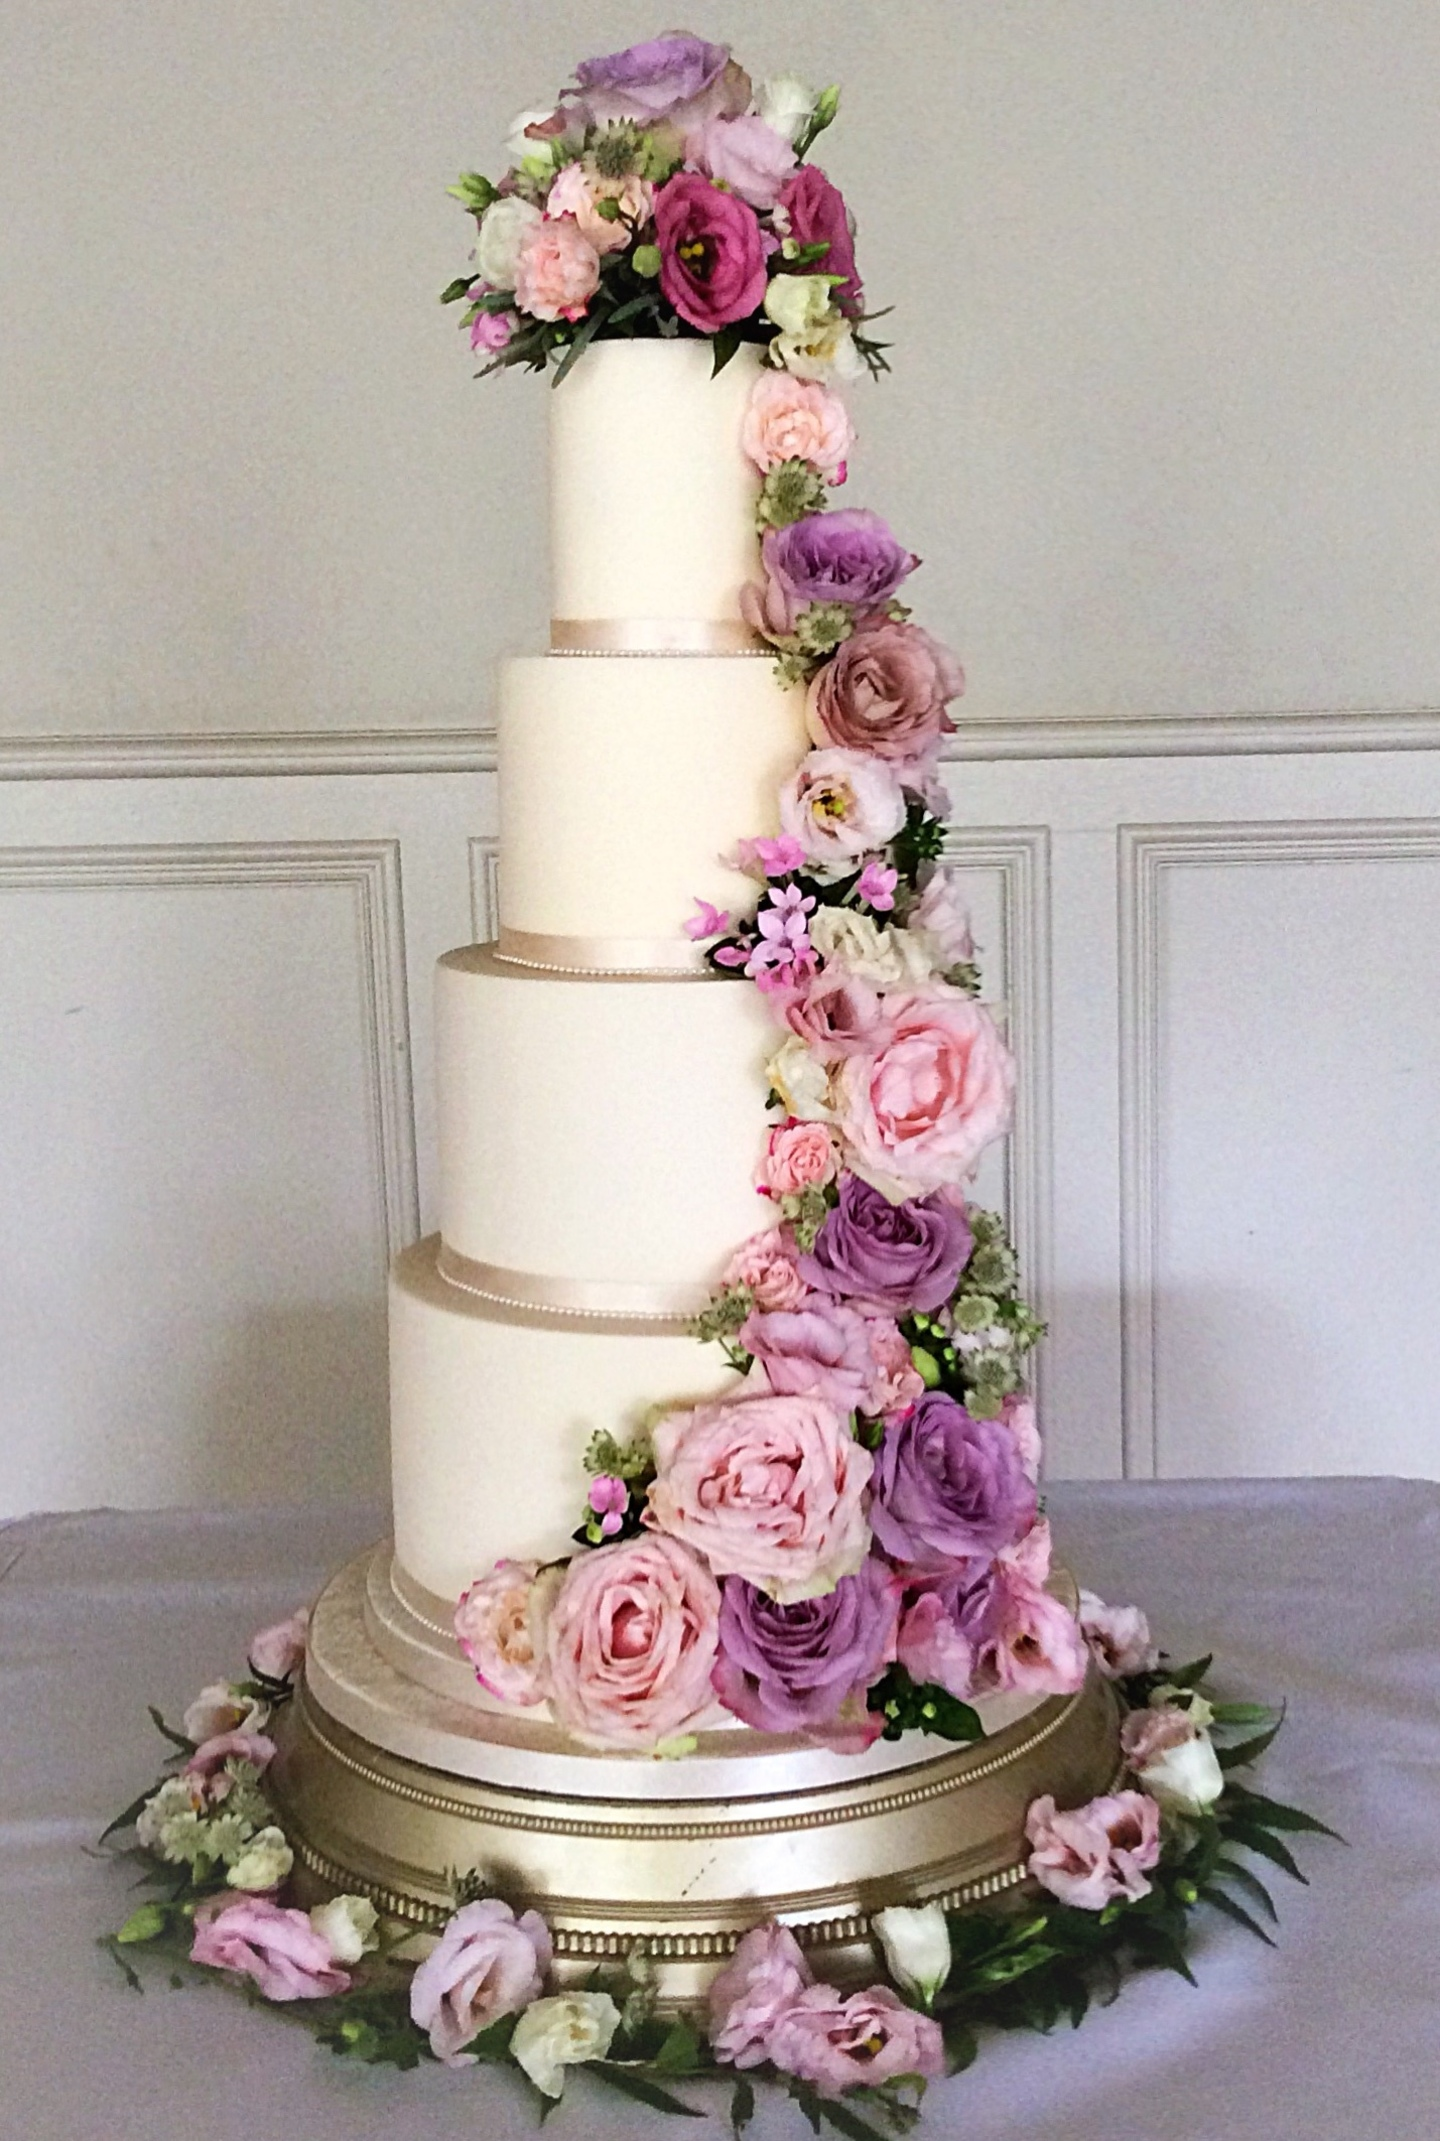 Cakes By Deborah Limerick Bakers And Cakers